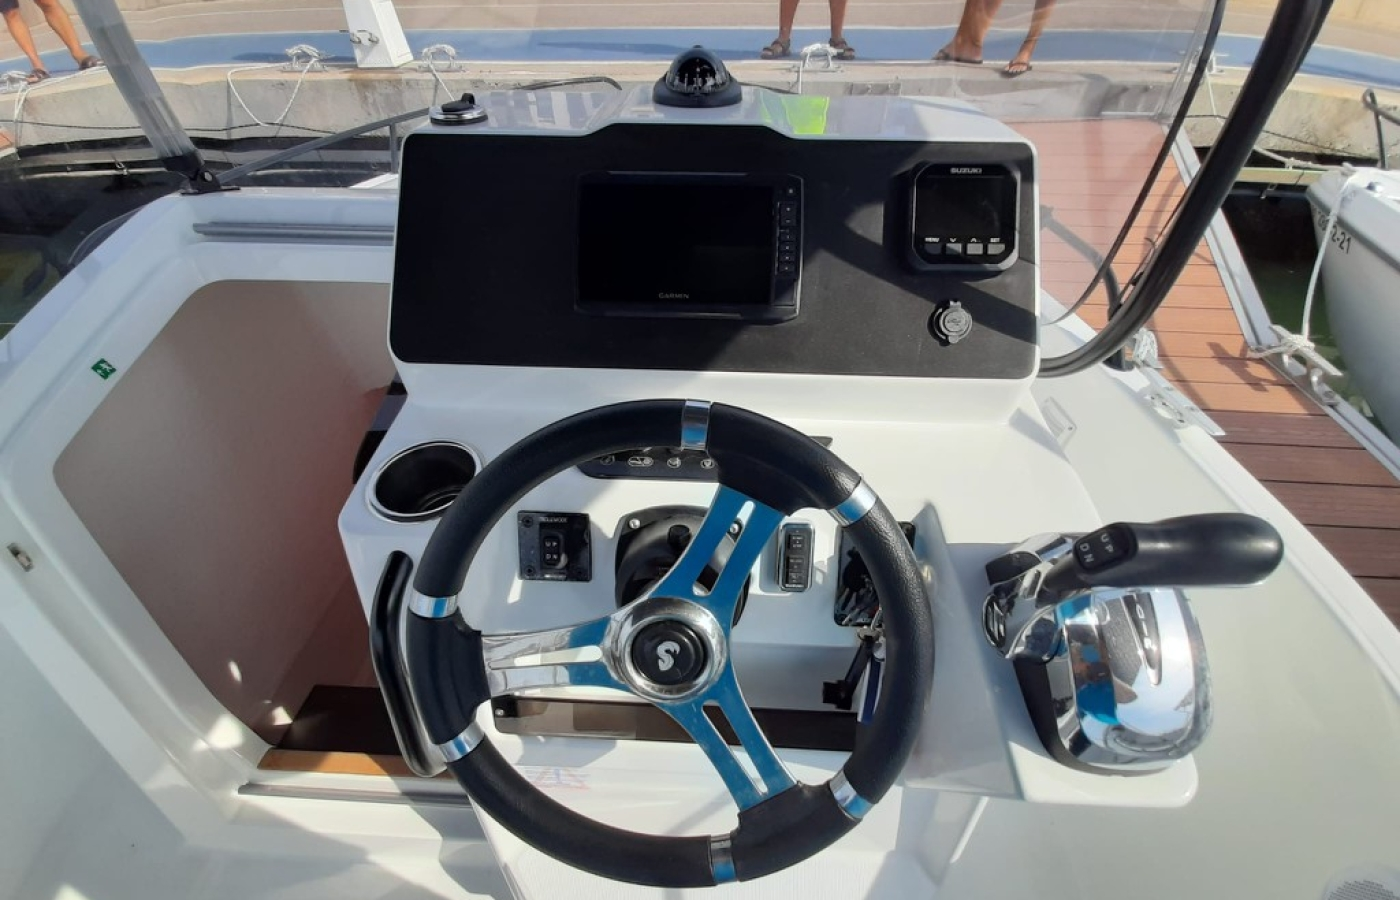 The steering wheel and cockpit